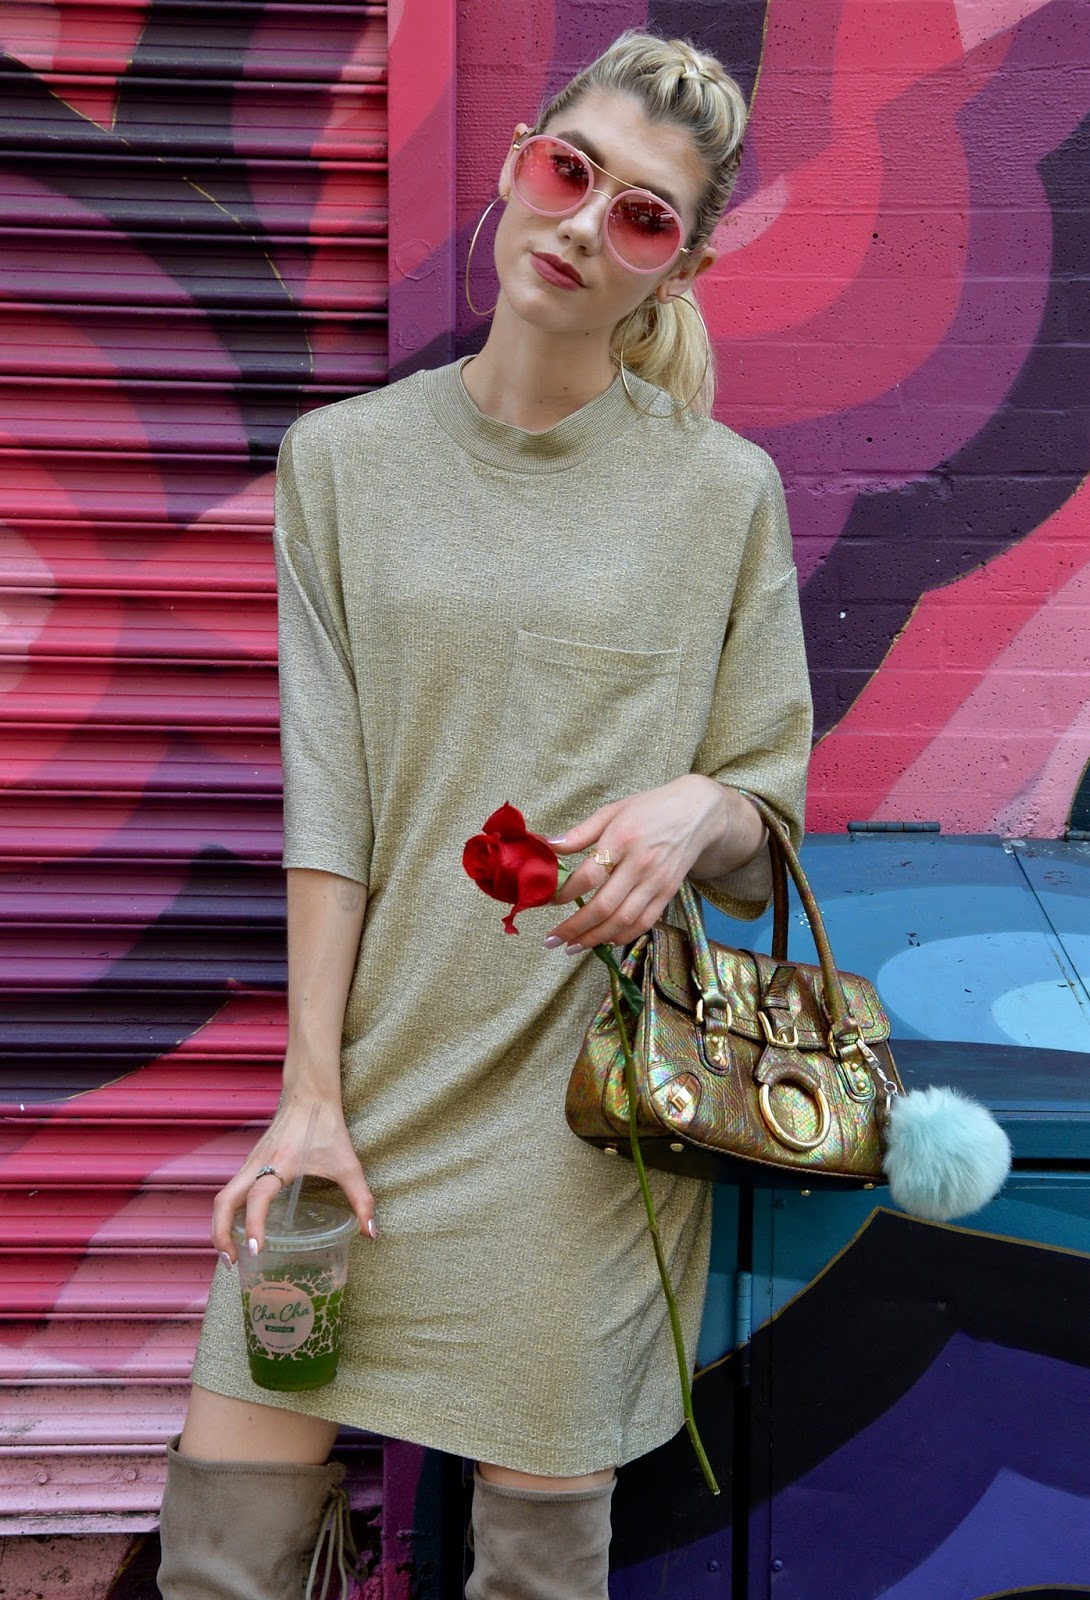 Giving sass in a gold tee shirt dress with a vintage purse and rose.